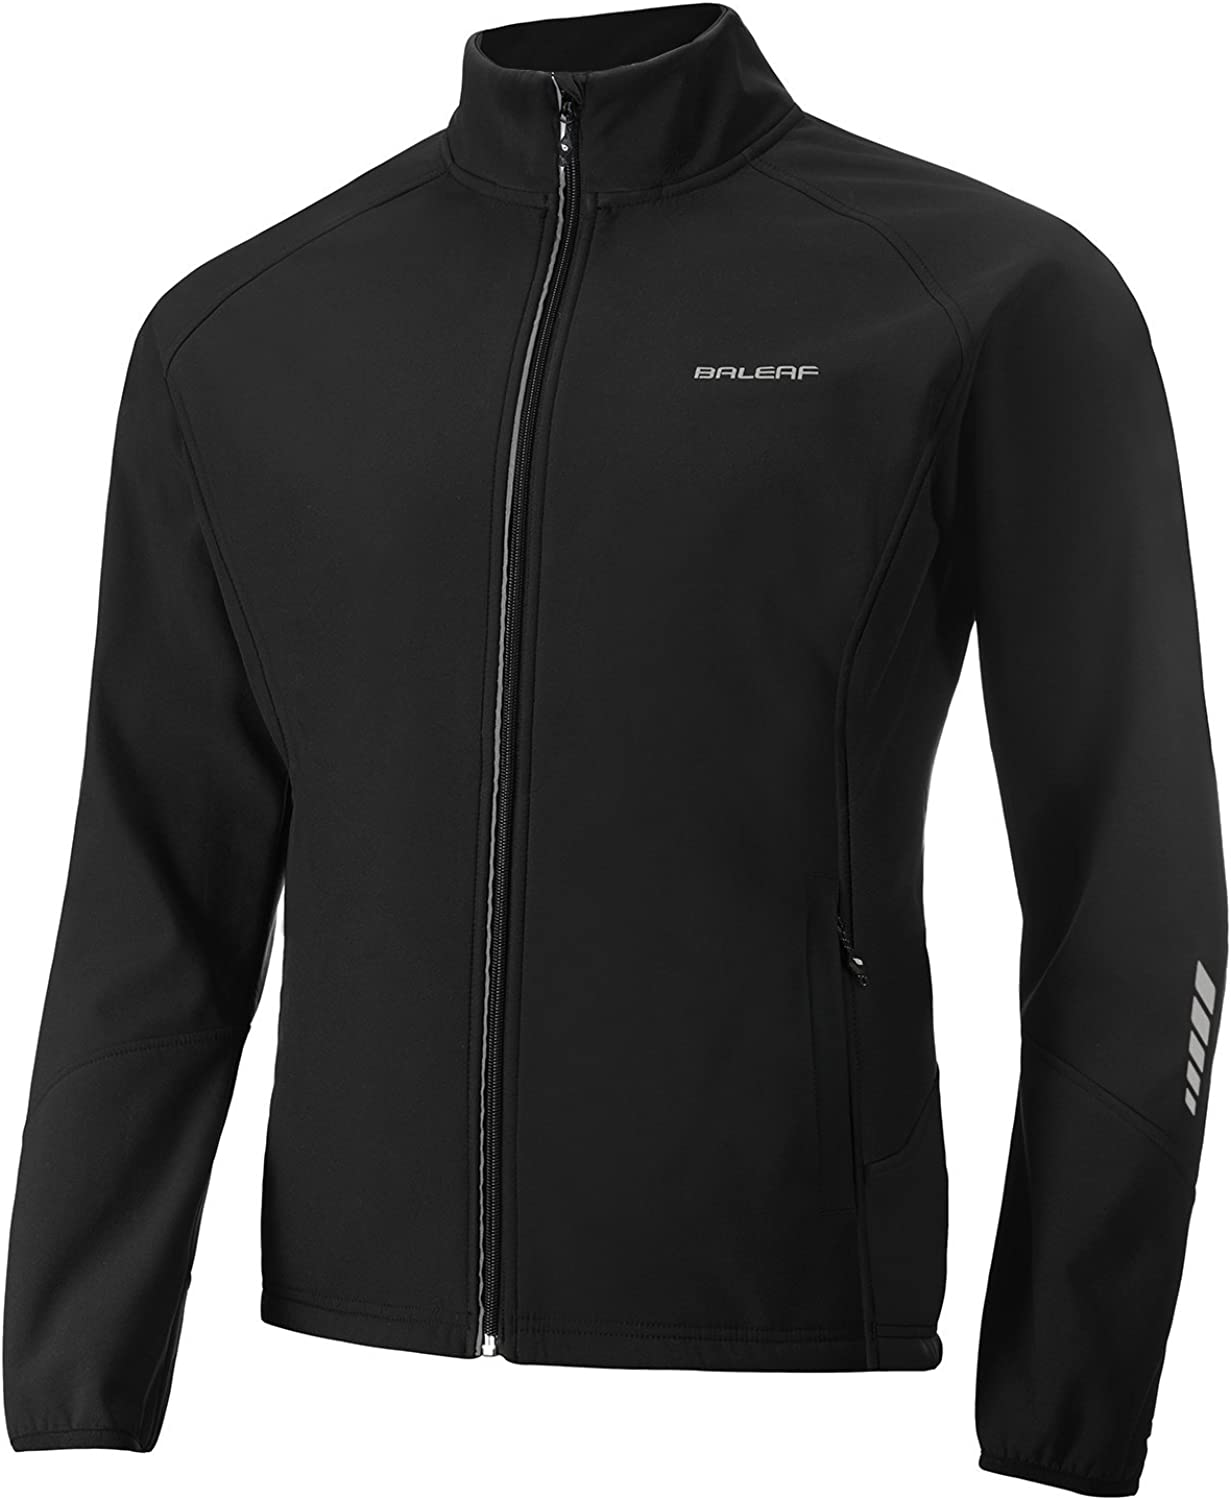 BALEAF Men's Windproof Cycling Running Jacket Thermal Softshell Water-Repellent Lightweight Windbreaker Winter : Clothing